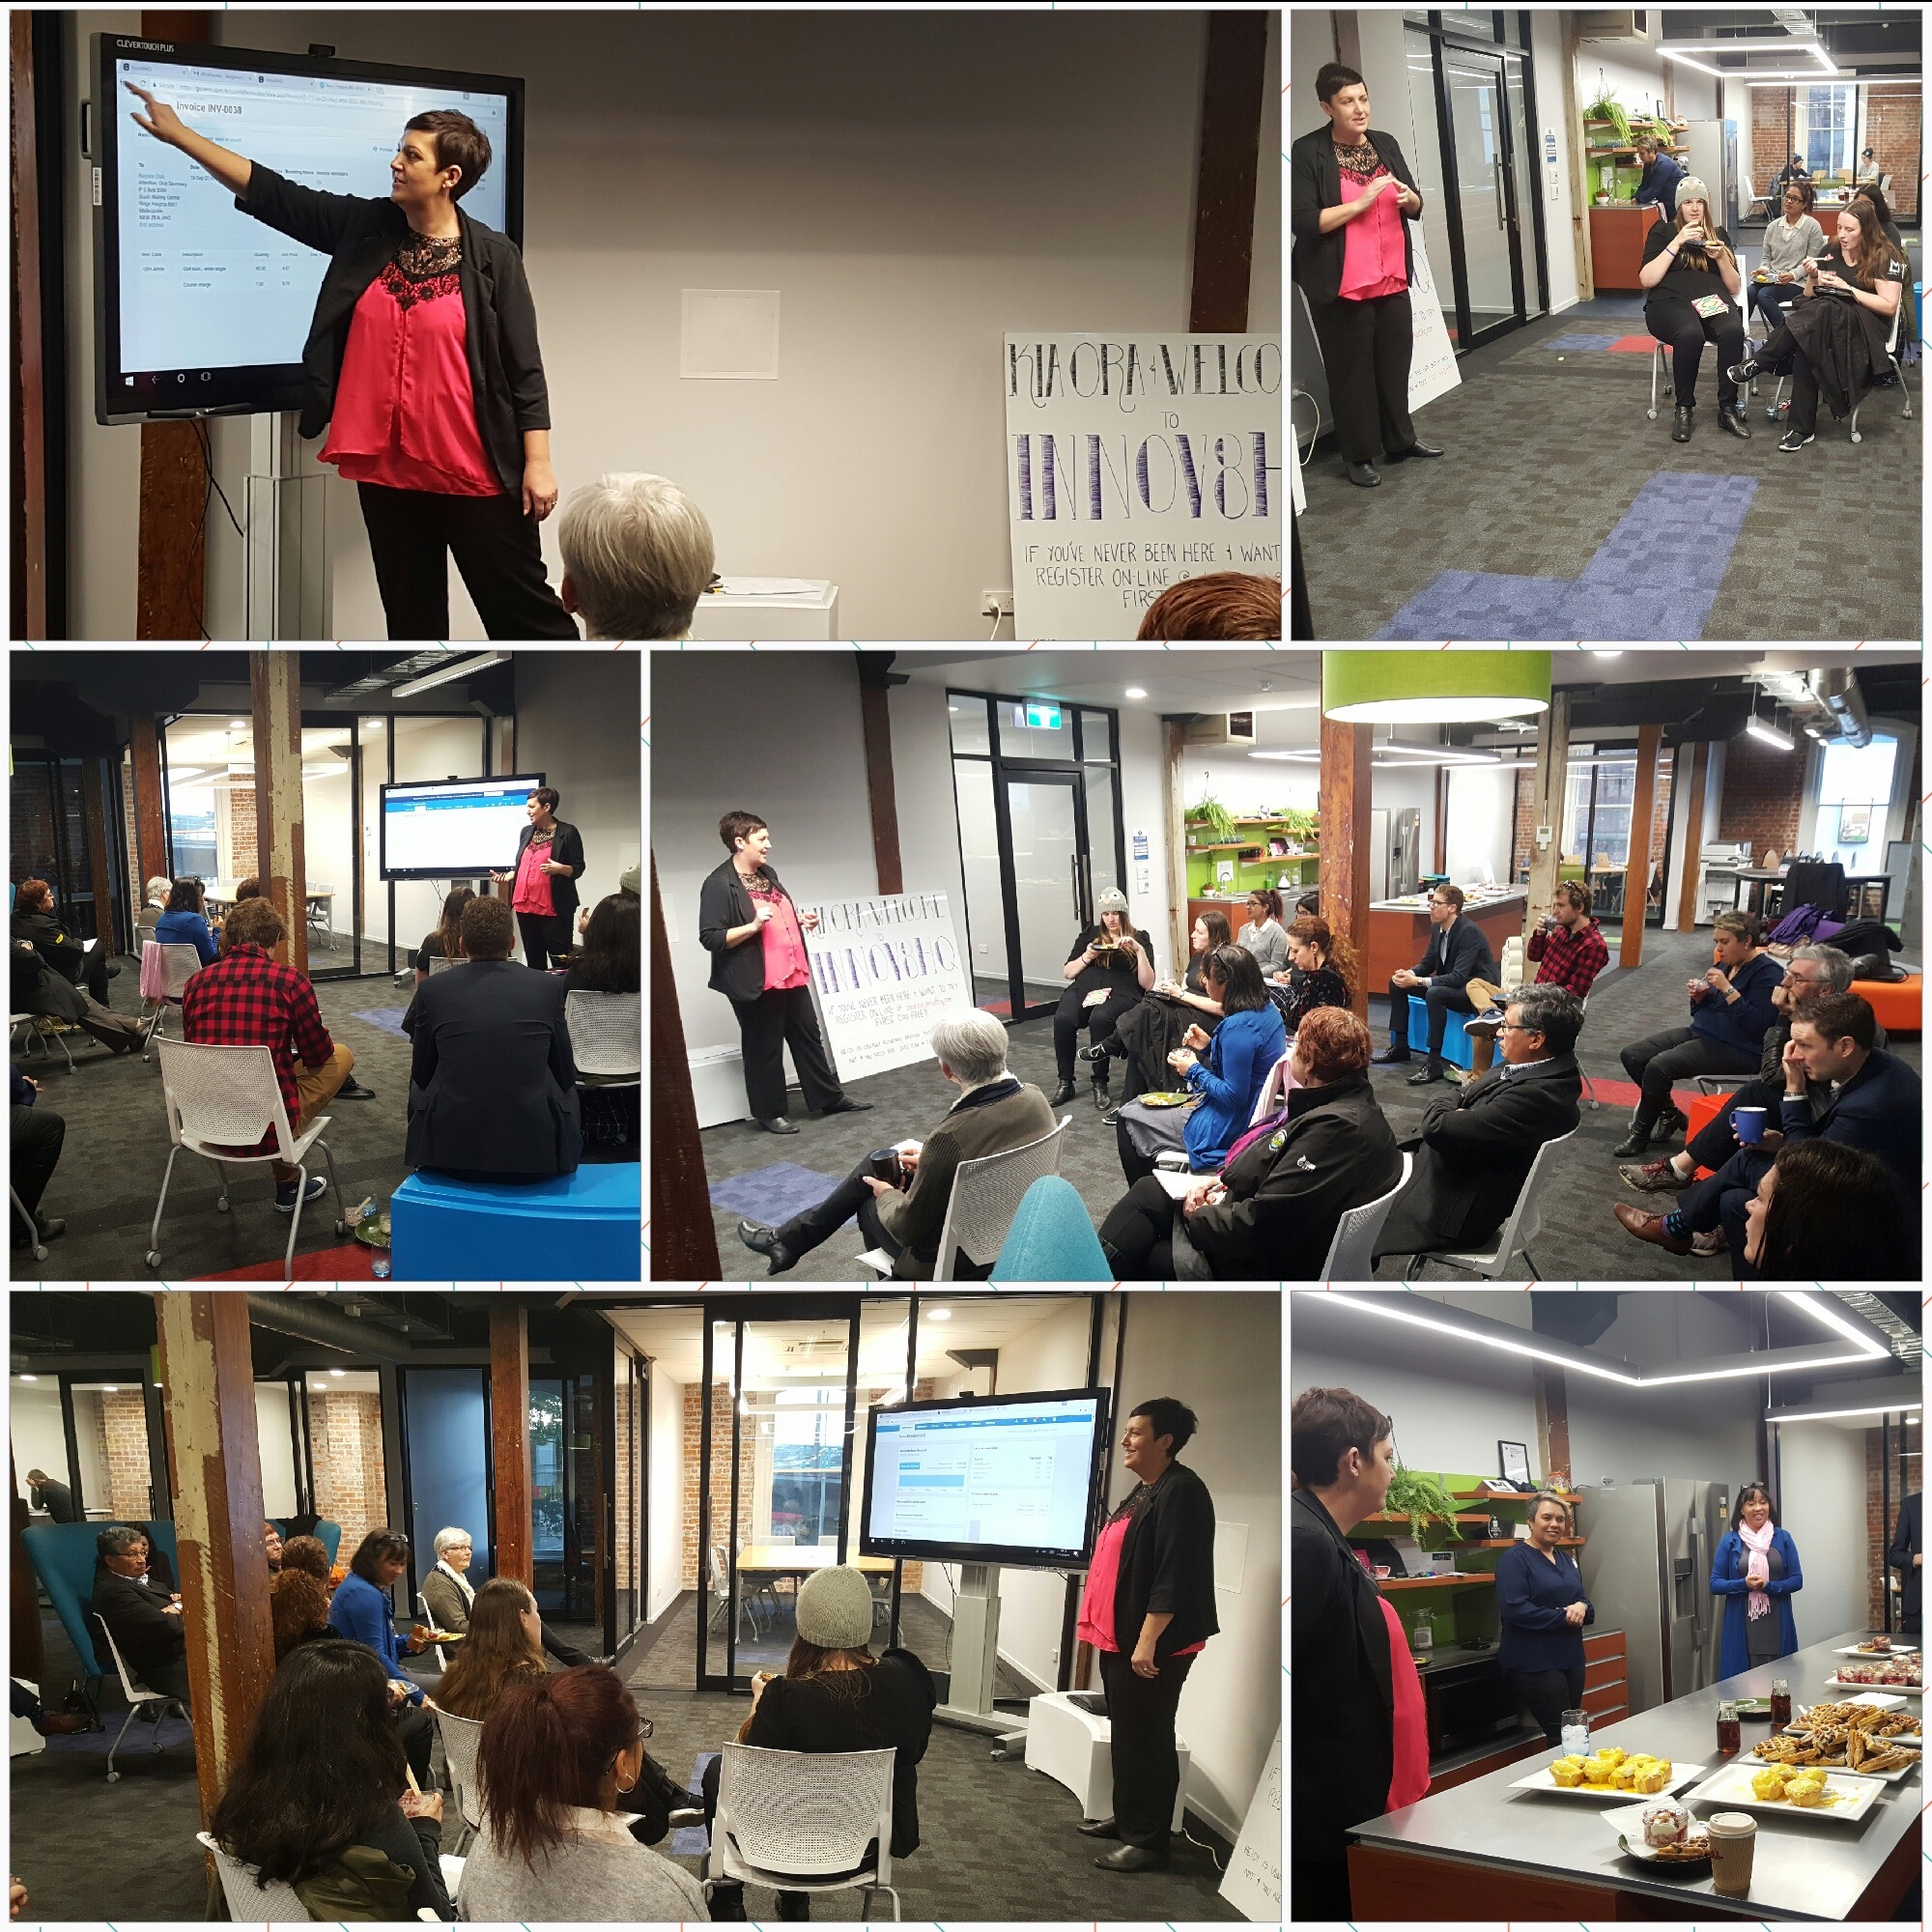 - Donna and Jamie (Polson Higgs) presenting xero on the large screen at Innov8HQ.  Seasoned users of xero commented they had picked up new tips, and learned about new features.